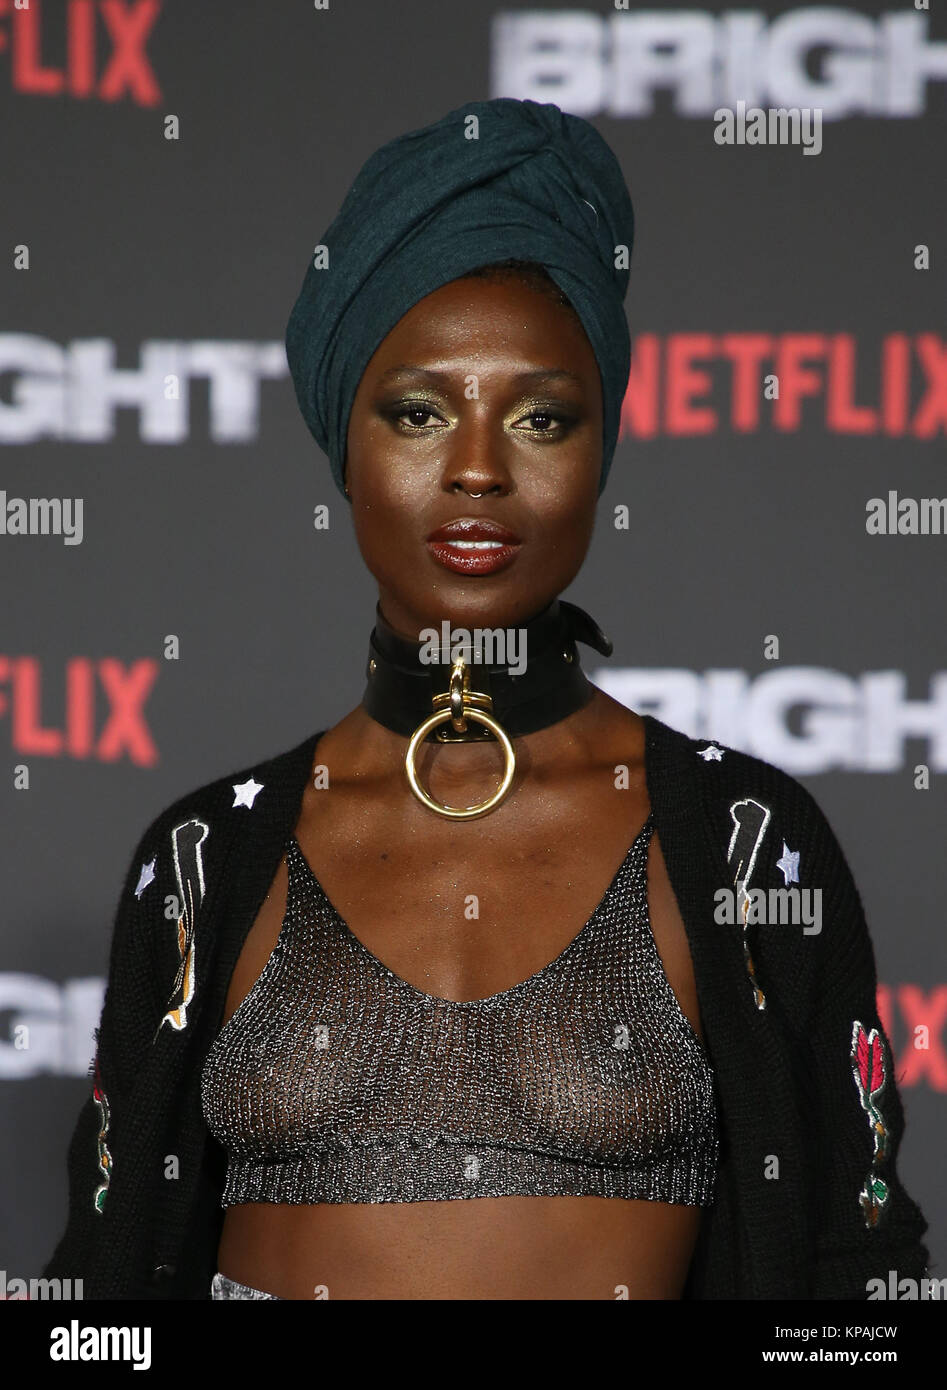 Pictures Jodie Turner Smith nude (63 foto and video), Sexy, Fappening, Selfie, braless 2006